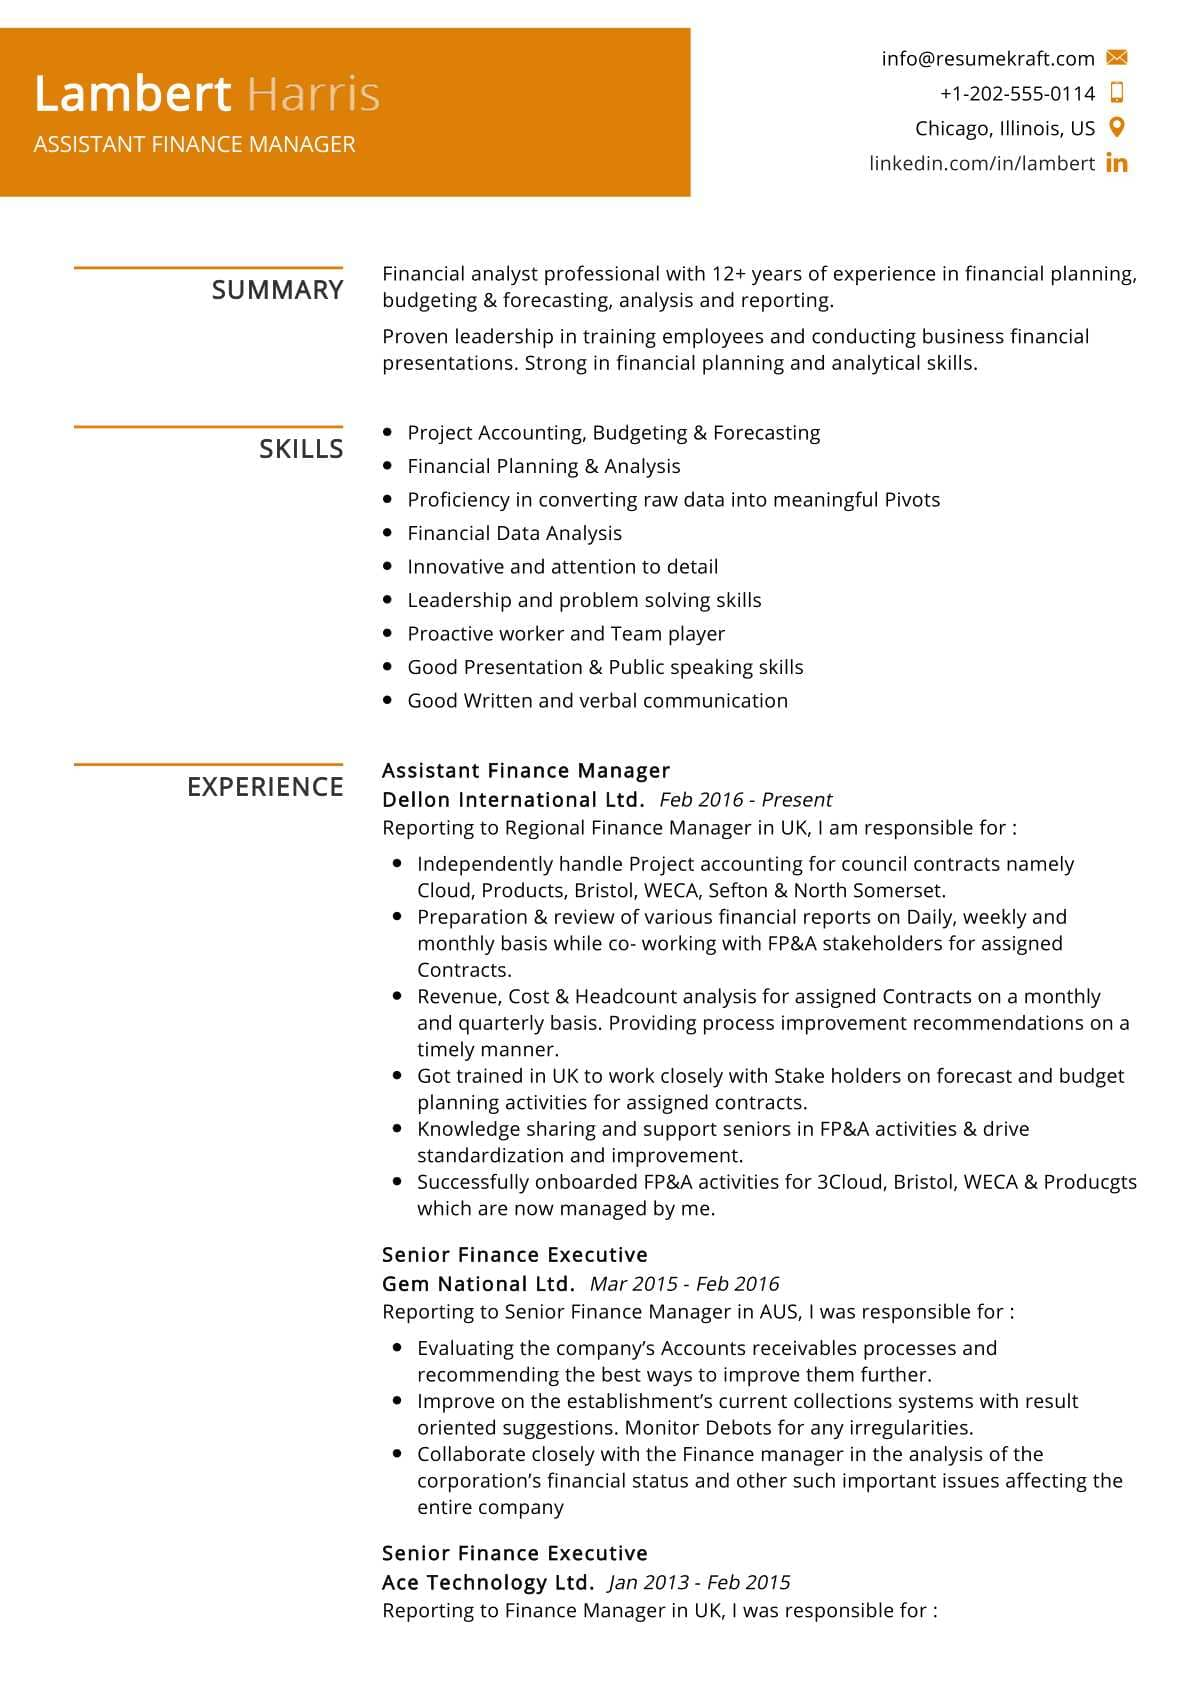 assistant finance manager resume example resumekraft summary making the perfect visualcv Resume Finance Manager Resume Summary